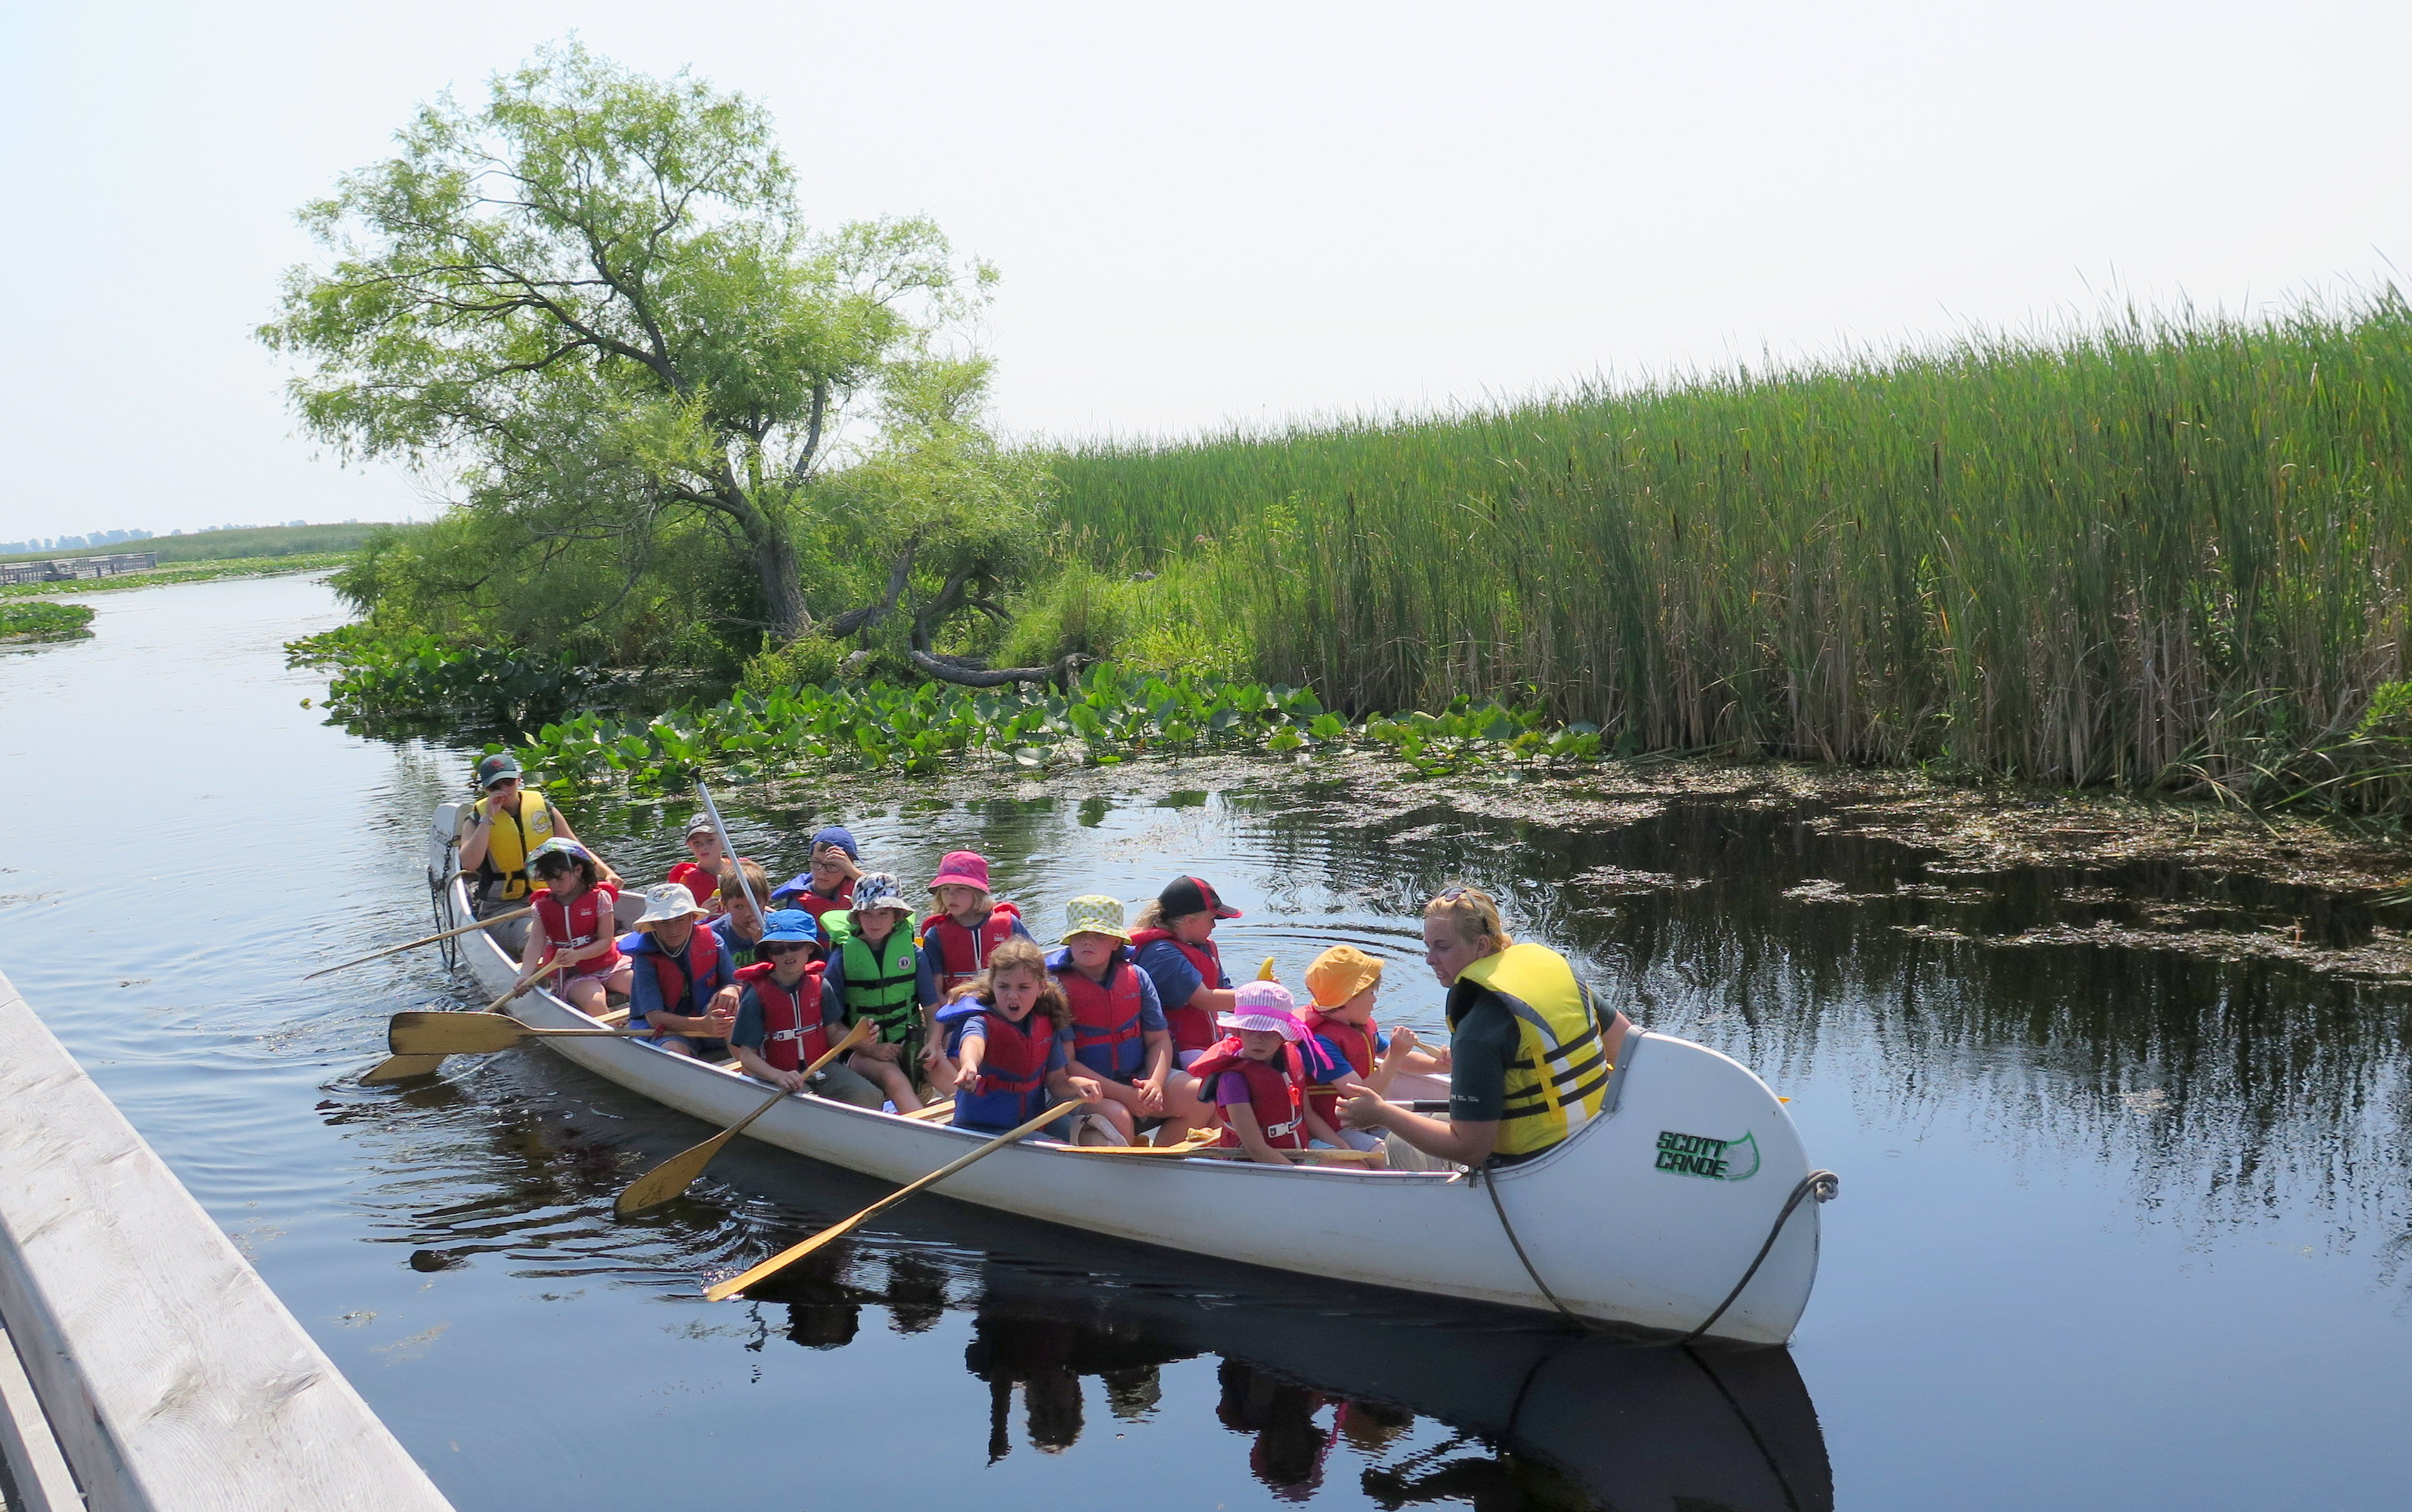 Point Pelee National Park is the southernmost point in Canada. It's a great spot for boating, bird-watching and enjoying nature up-close. JIM BYERS PHOTO